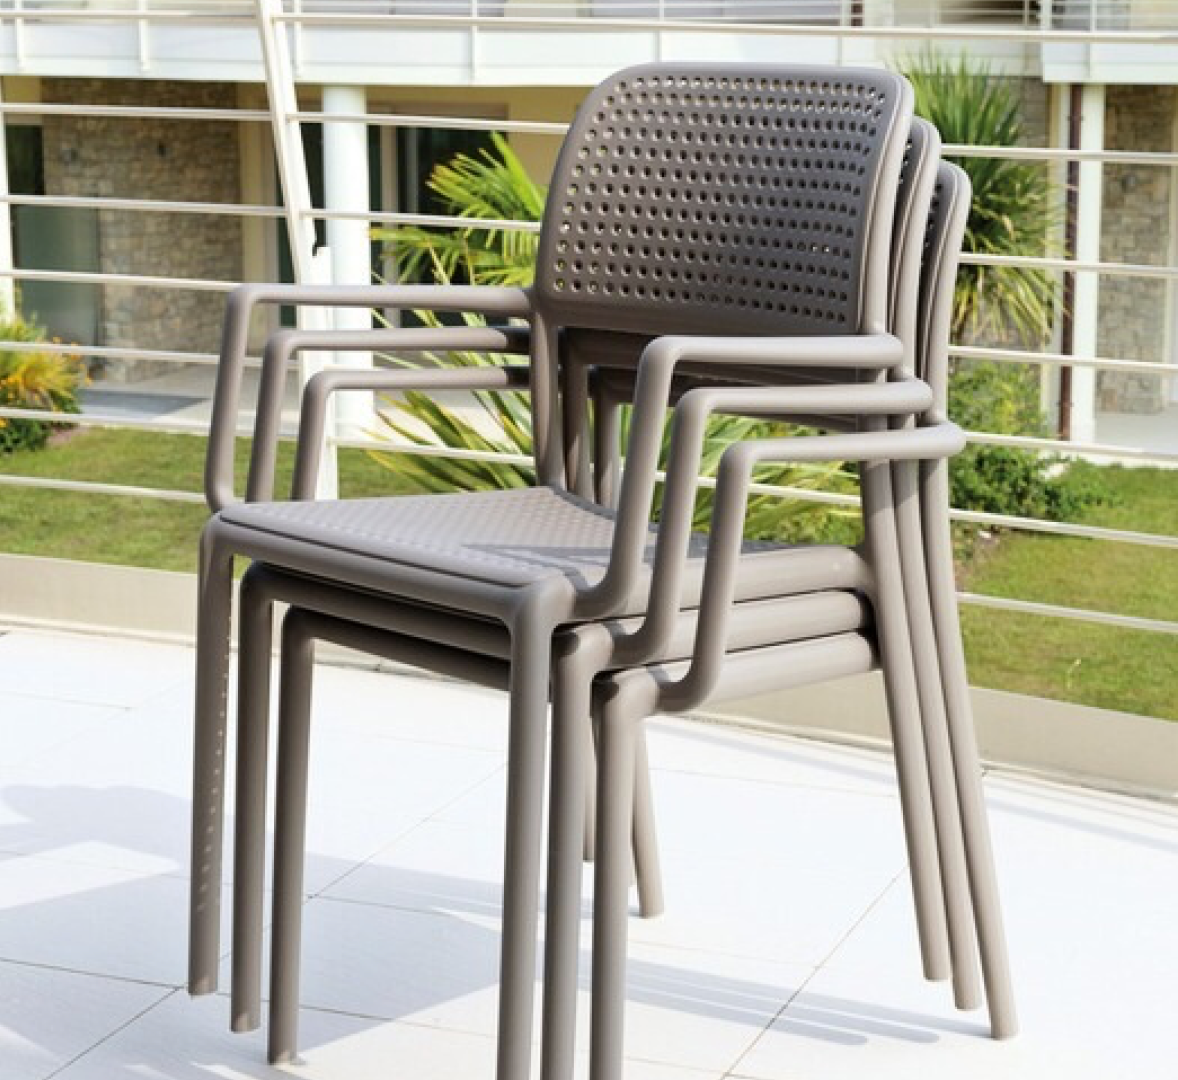 Nardi chairs